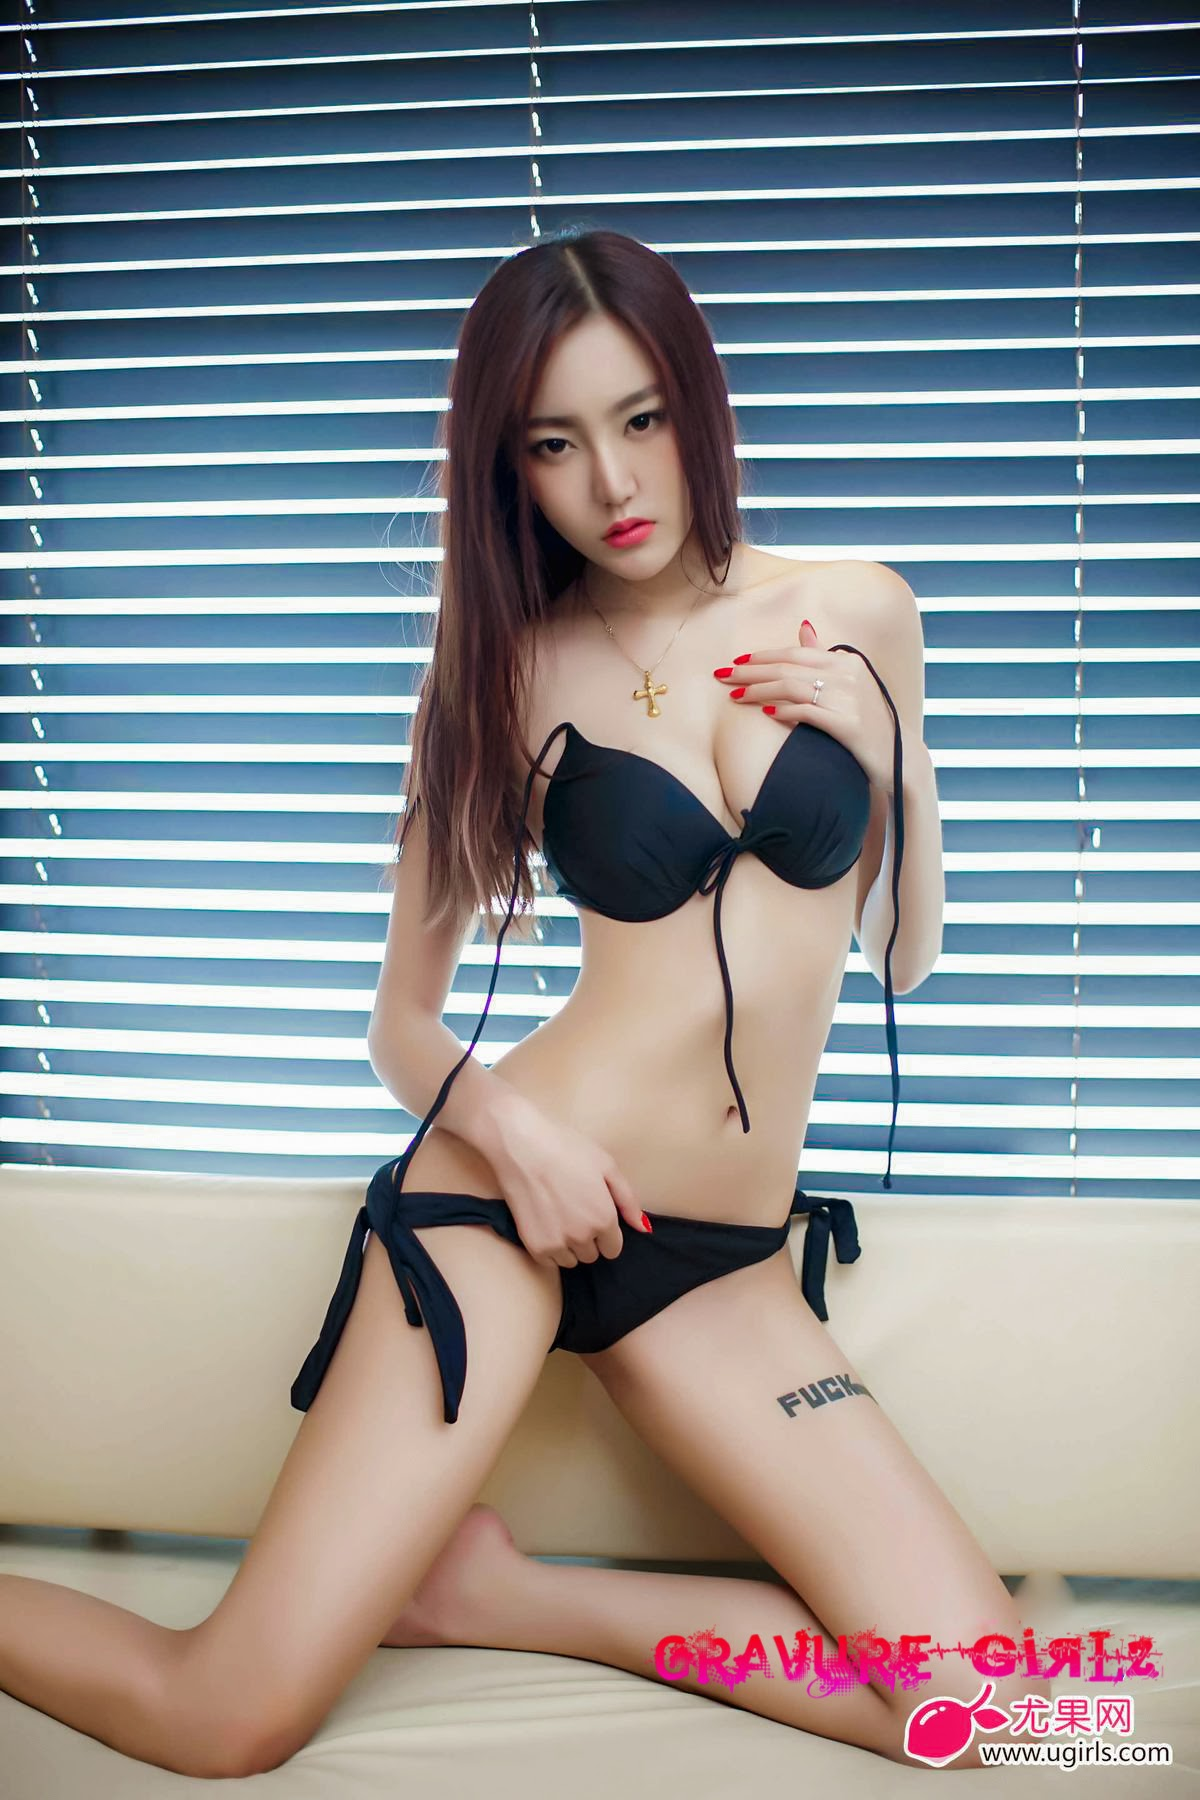 Chi Wan Guo ƹ�婉郭 Young Chinese Girl Hot Ugirls Ű�果网 No 26